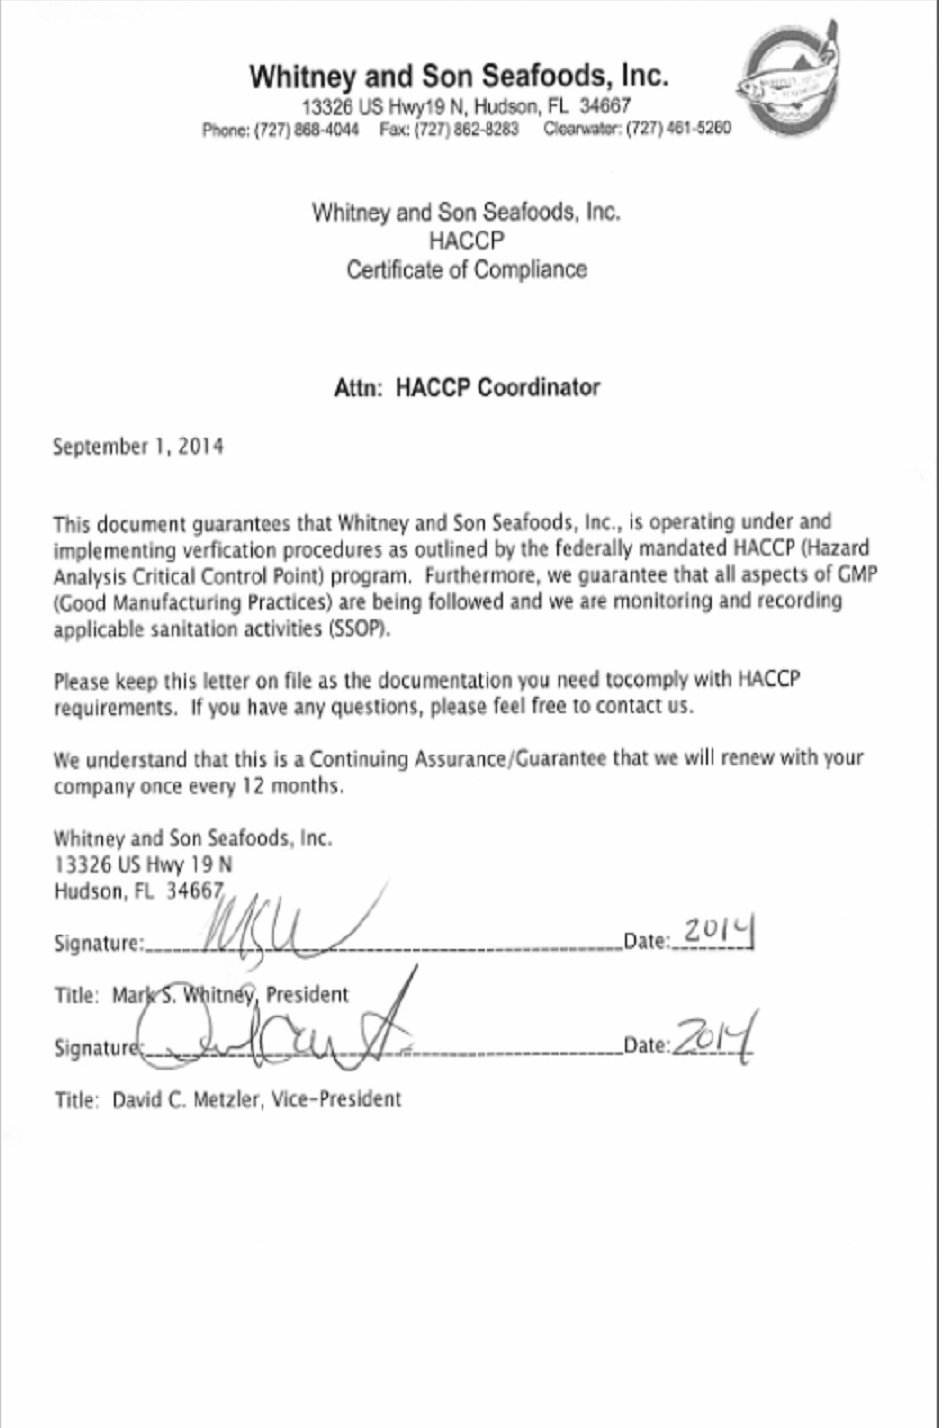 Whitney and Son Seafoods, HACCP Letter of Compliance